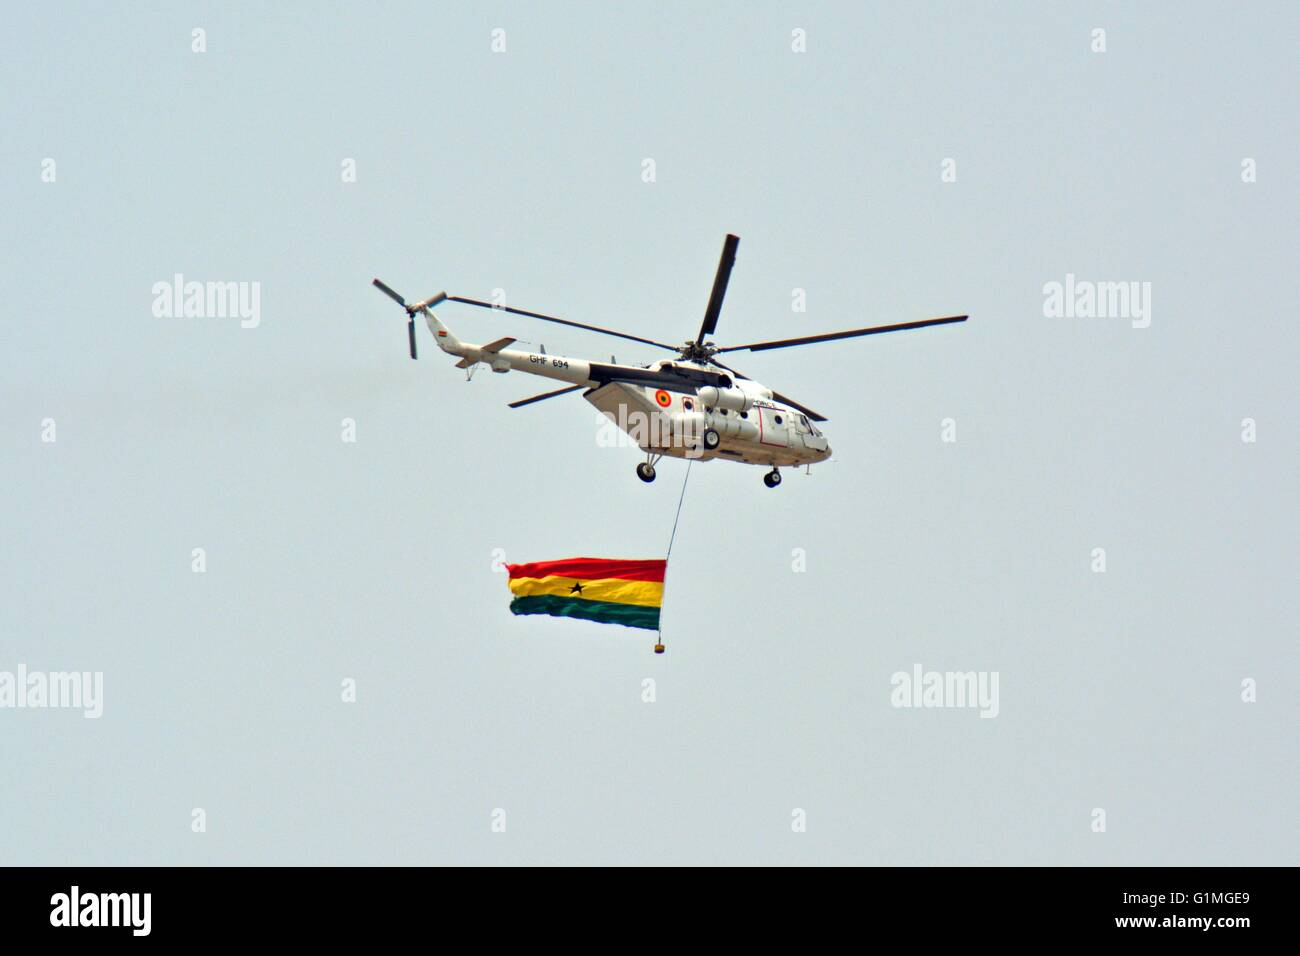 Ghana Air Force Helicopter, with attached Ghana Flag, overflying Accra at Independence Day celebrations. - Stock Image